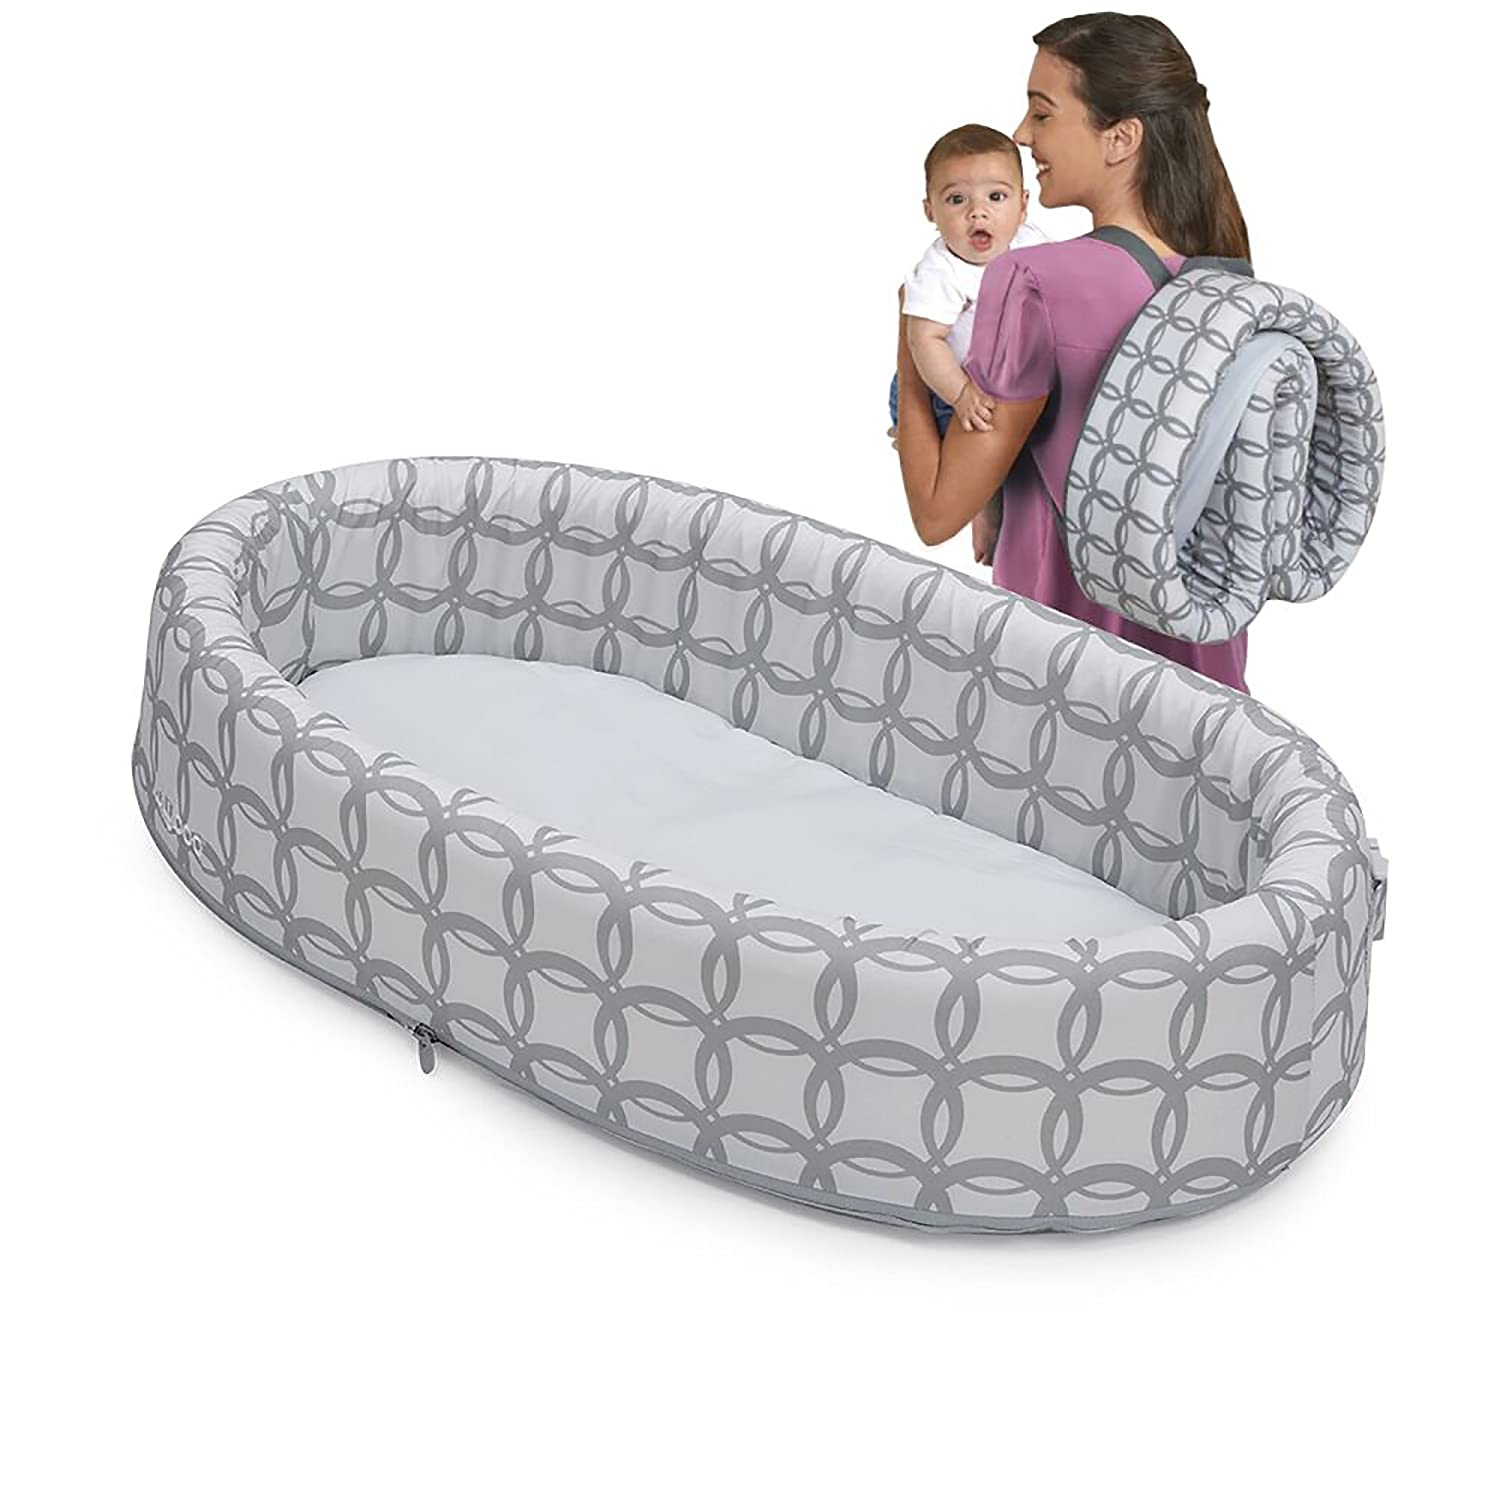 Lulyboo Bassinet To Go Classic BabyKidsBargains BLC 002